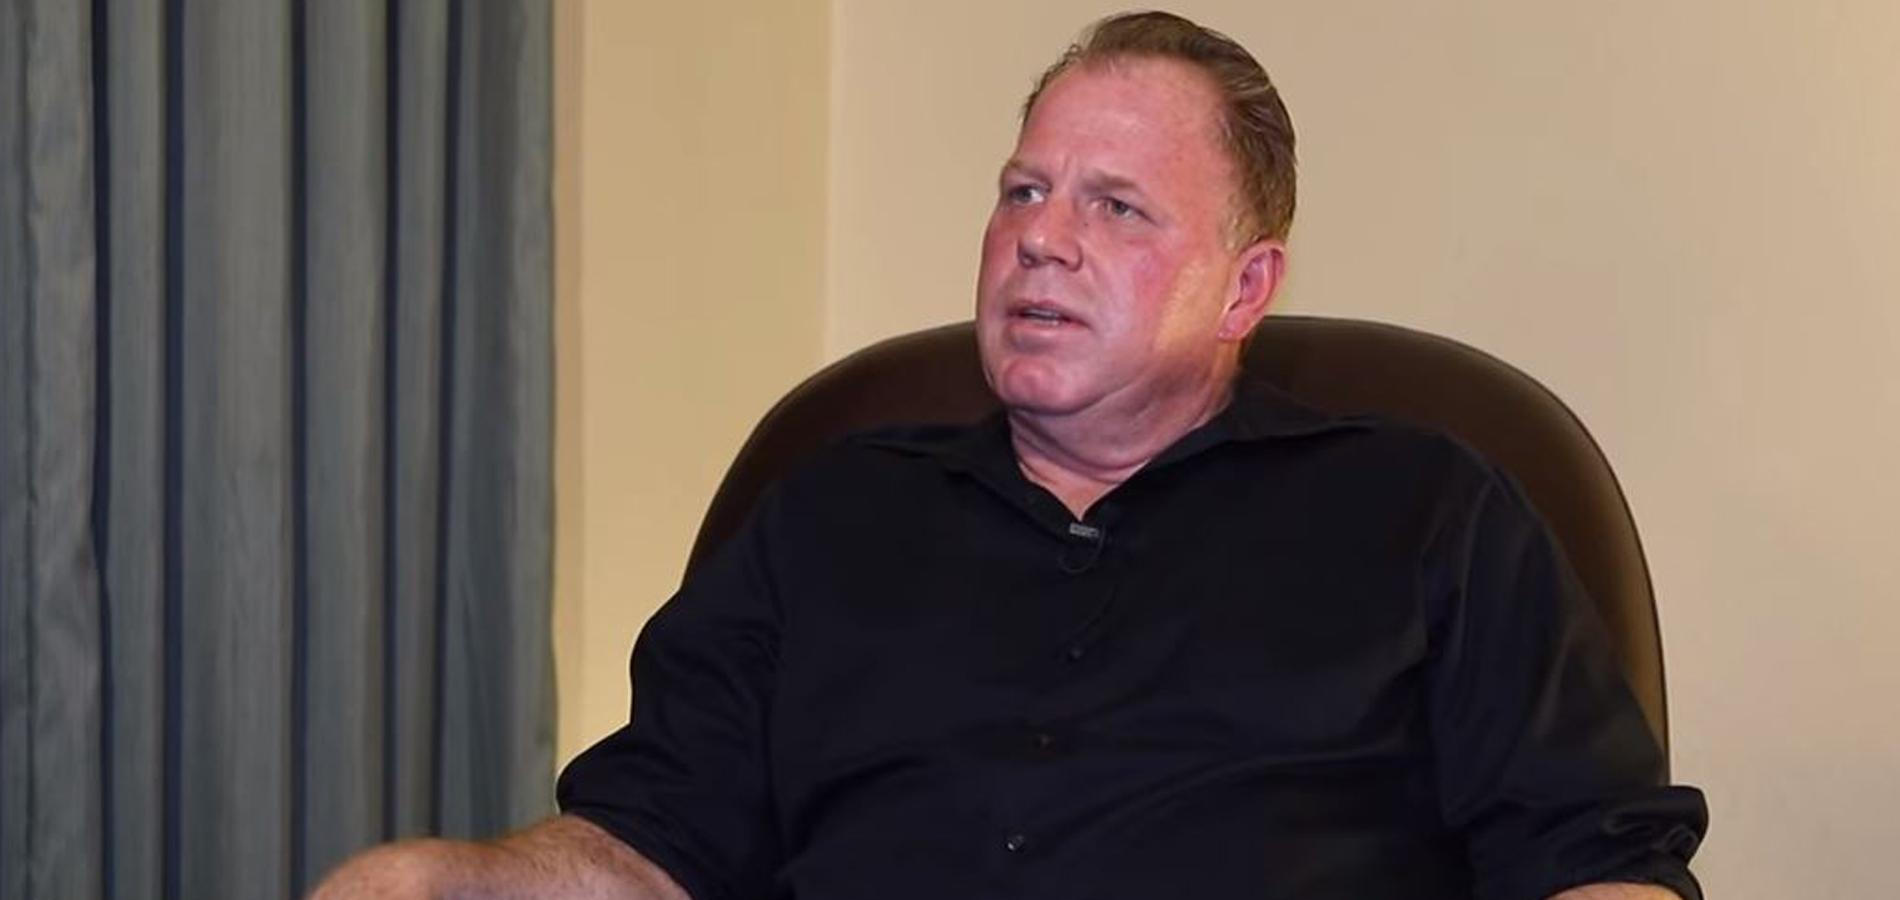 Tom Markle Jr., le demi-frère embarrassant de Meghan